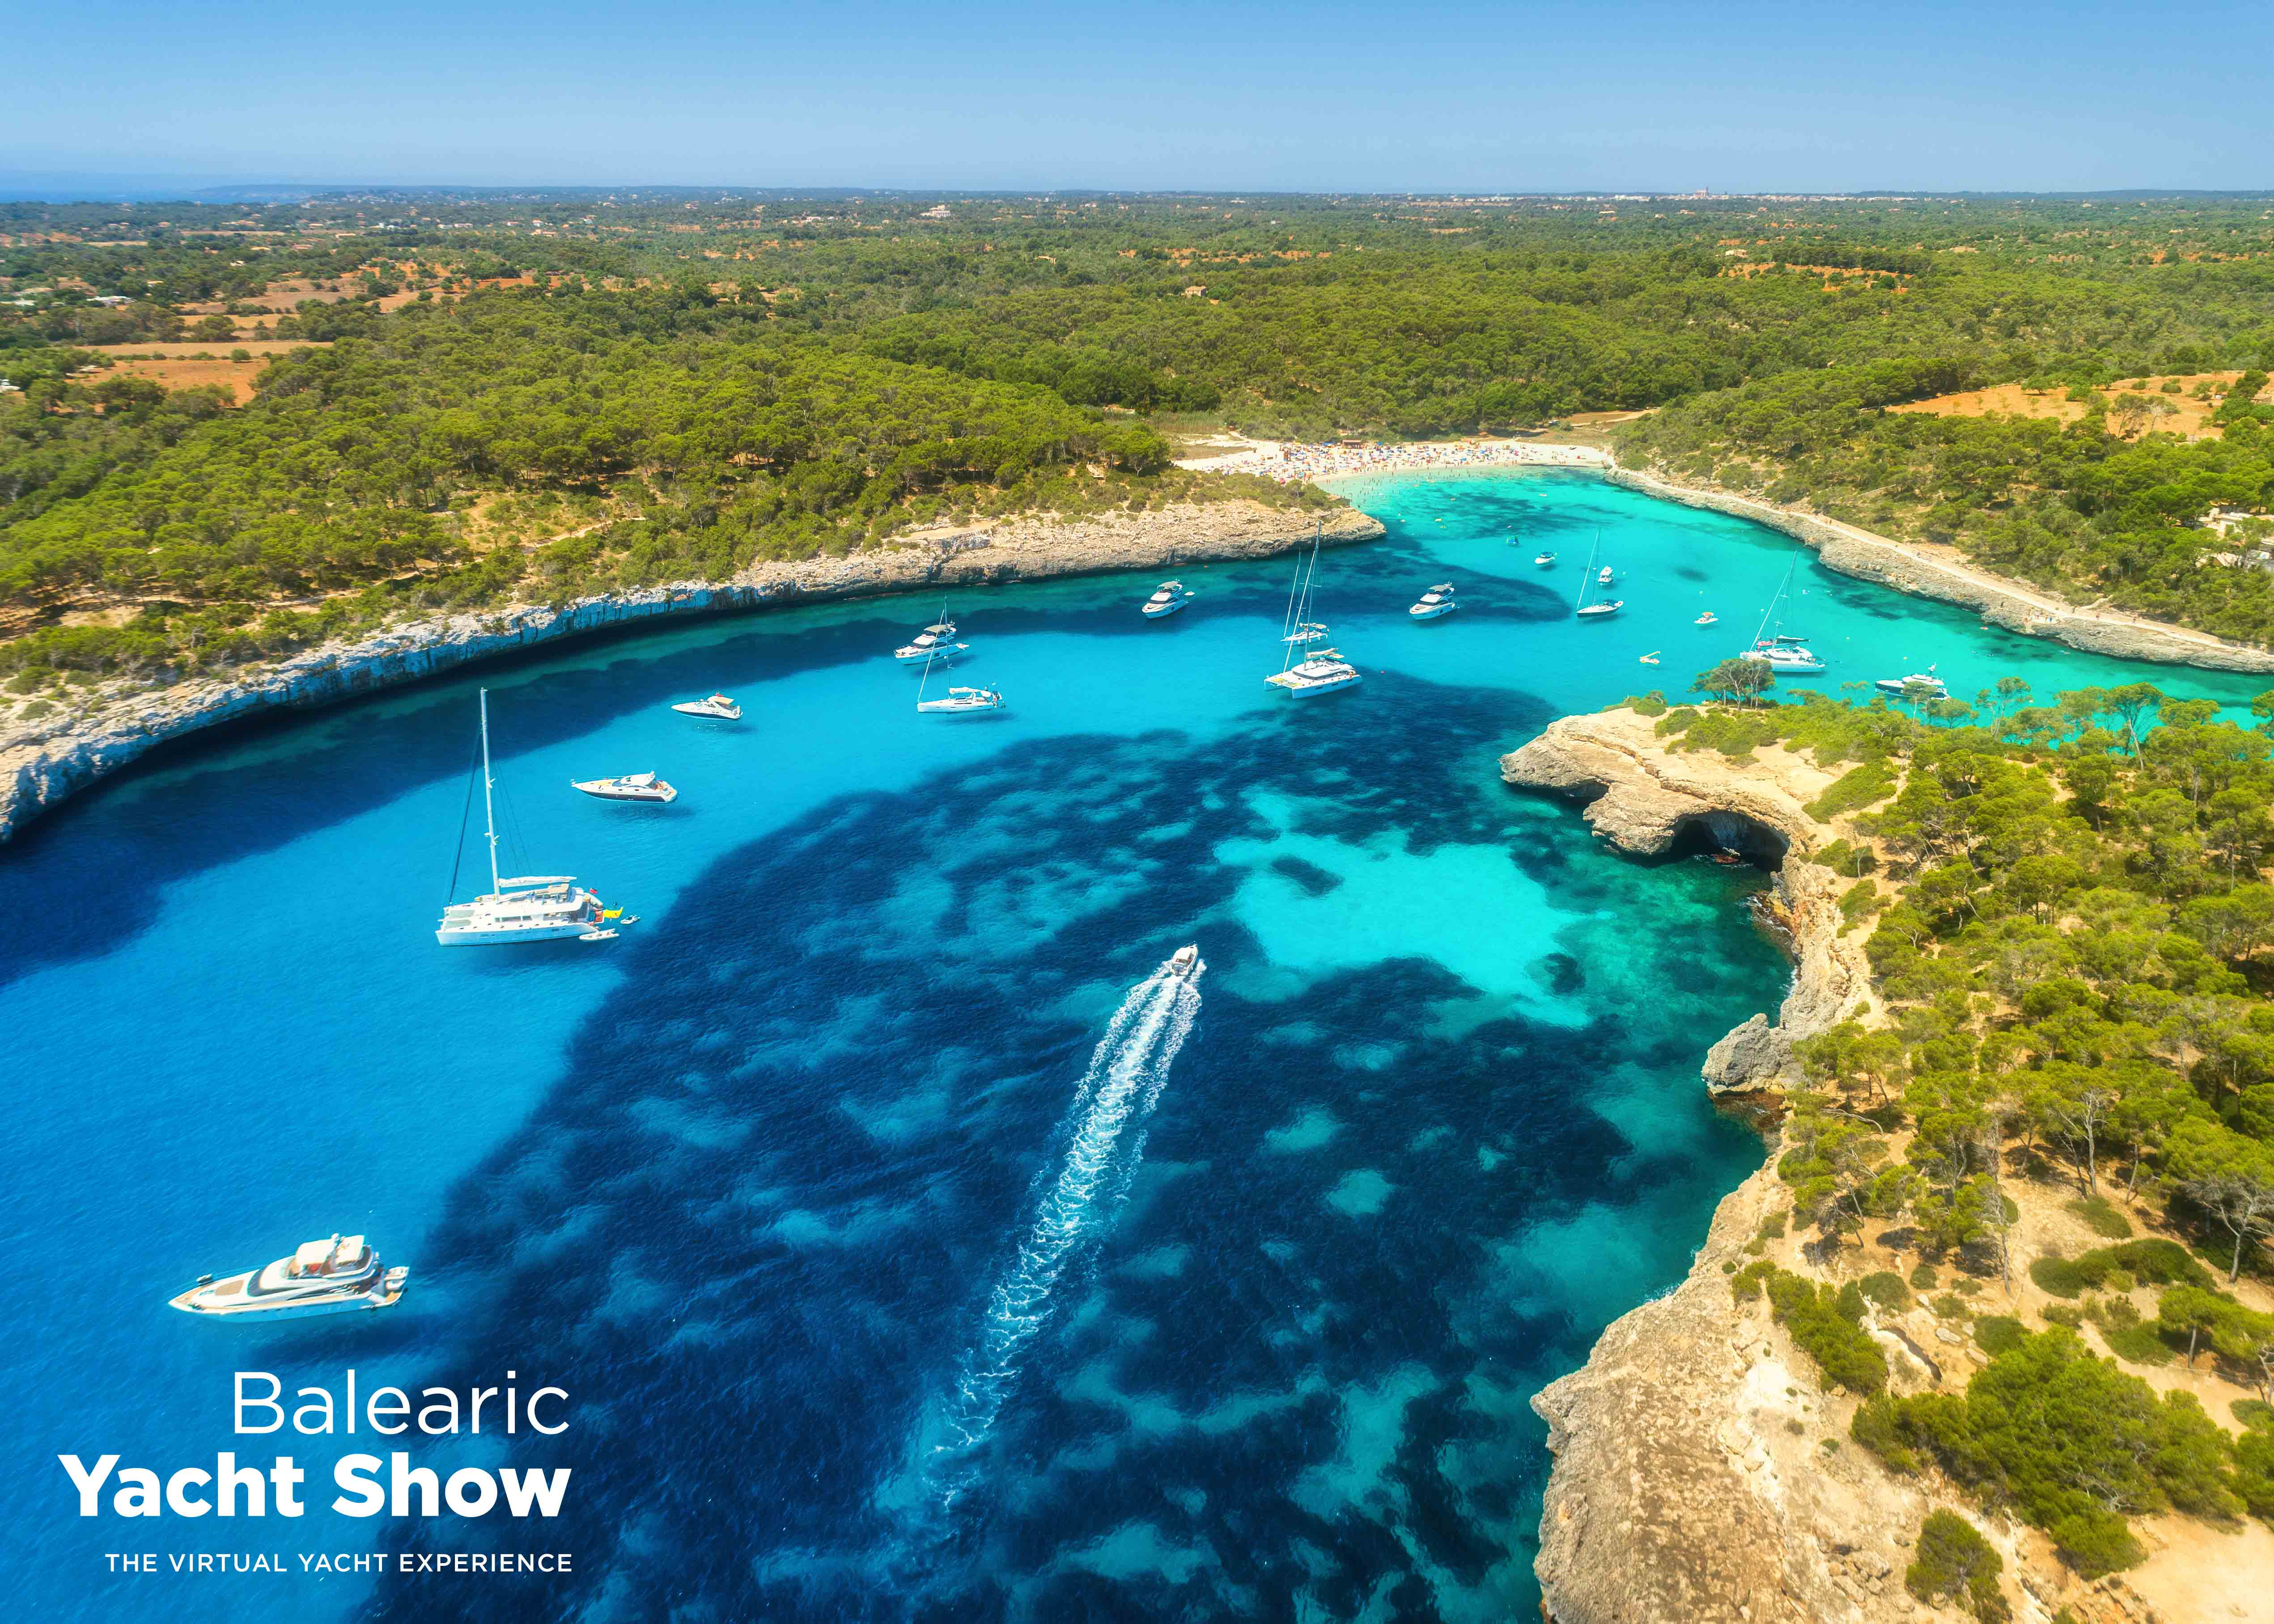 Balearic Yacht Show: Official Opening